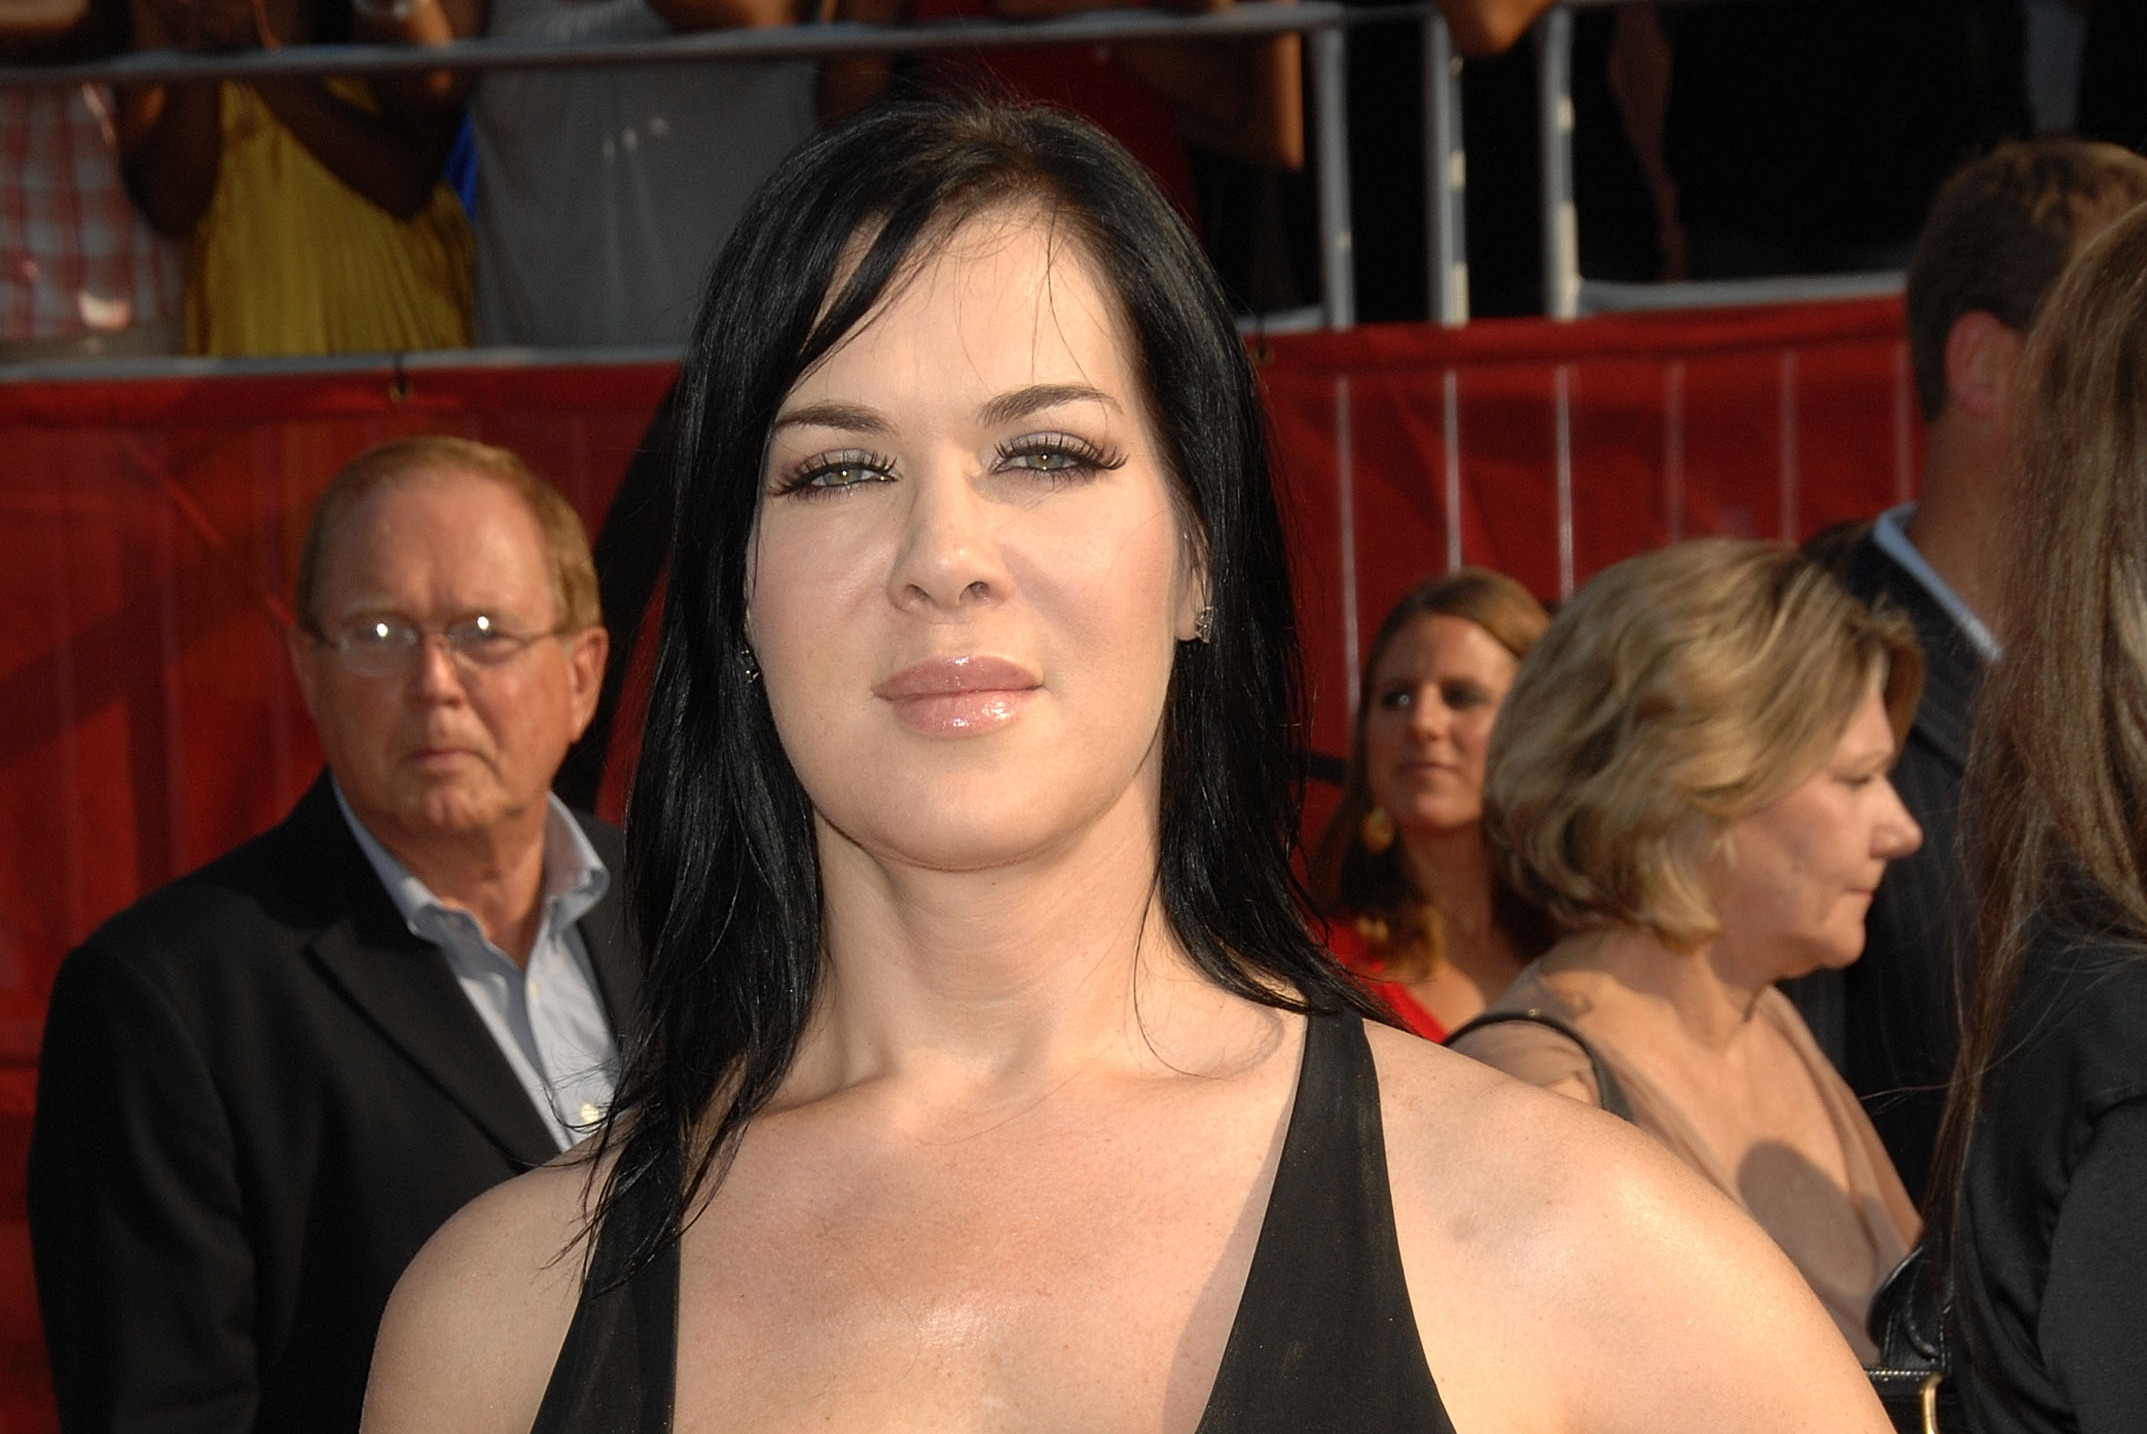 Backdoor To Chyna Pics chyna reportedly collapses at 2012 exxxotica expo porn